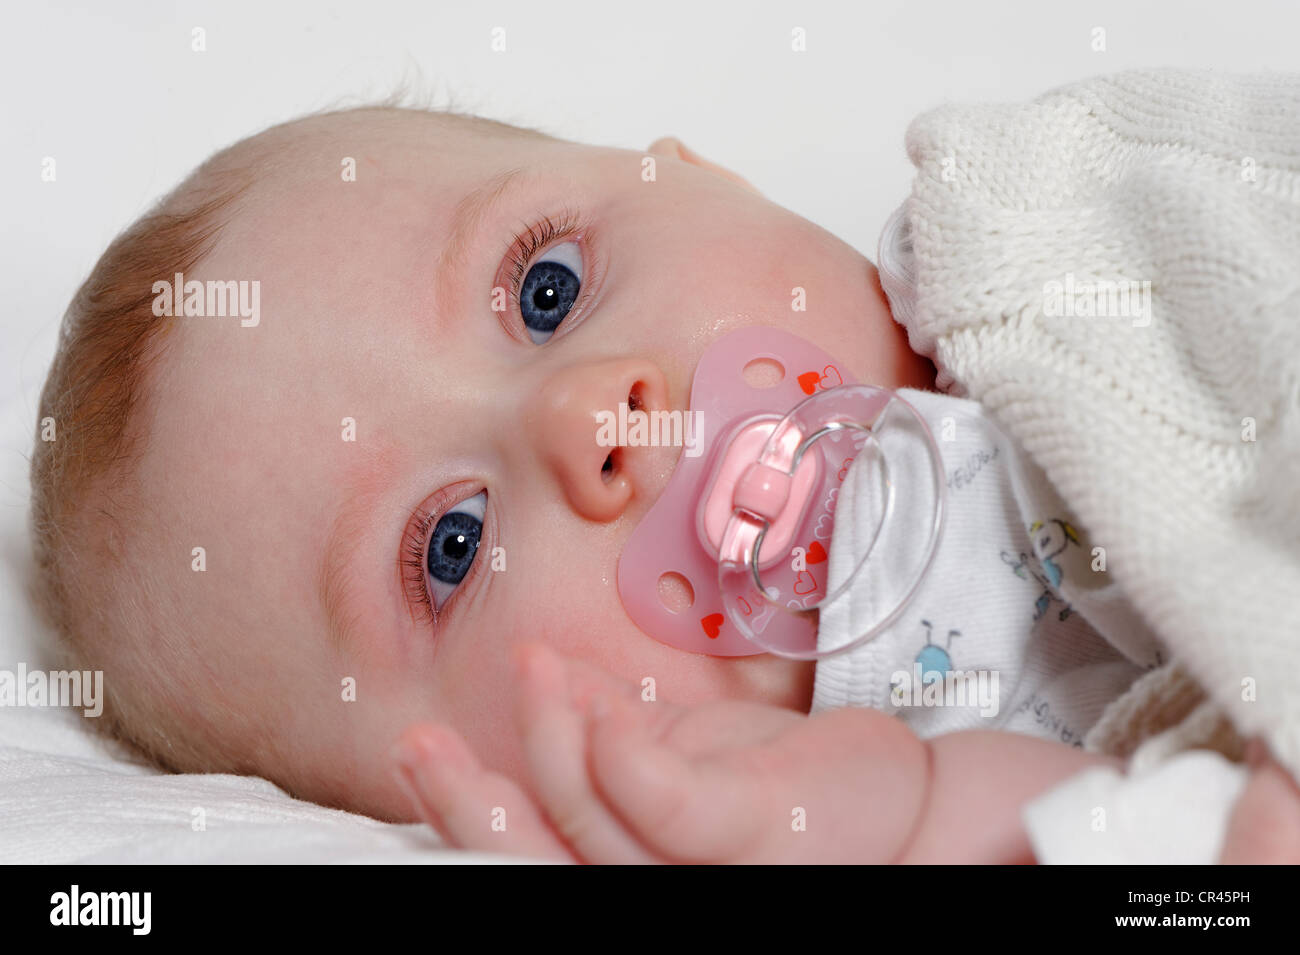 Baby, 6 months, with a dummy - Stock Image